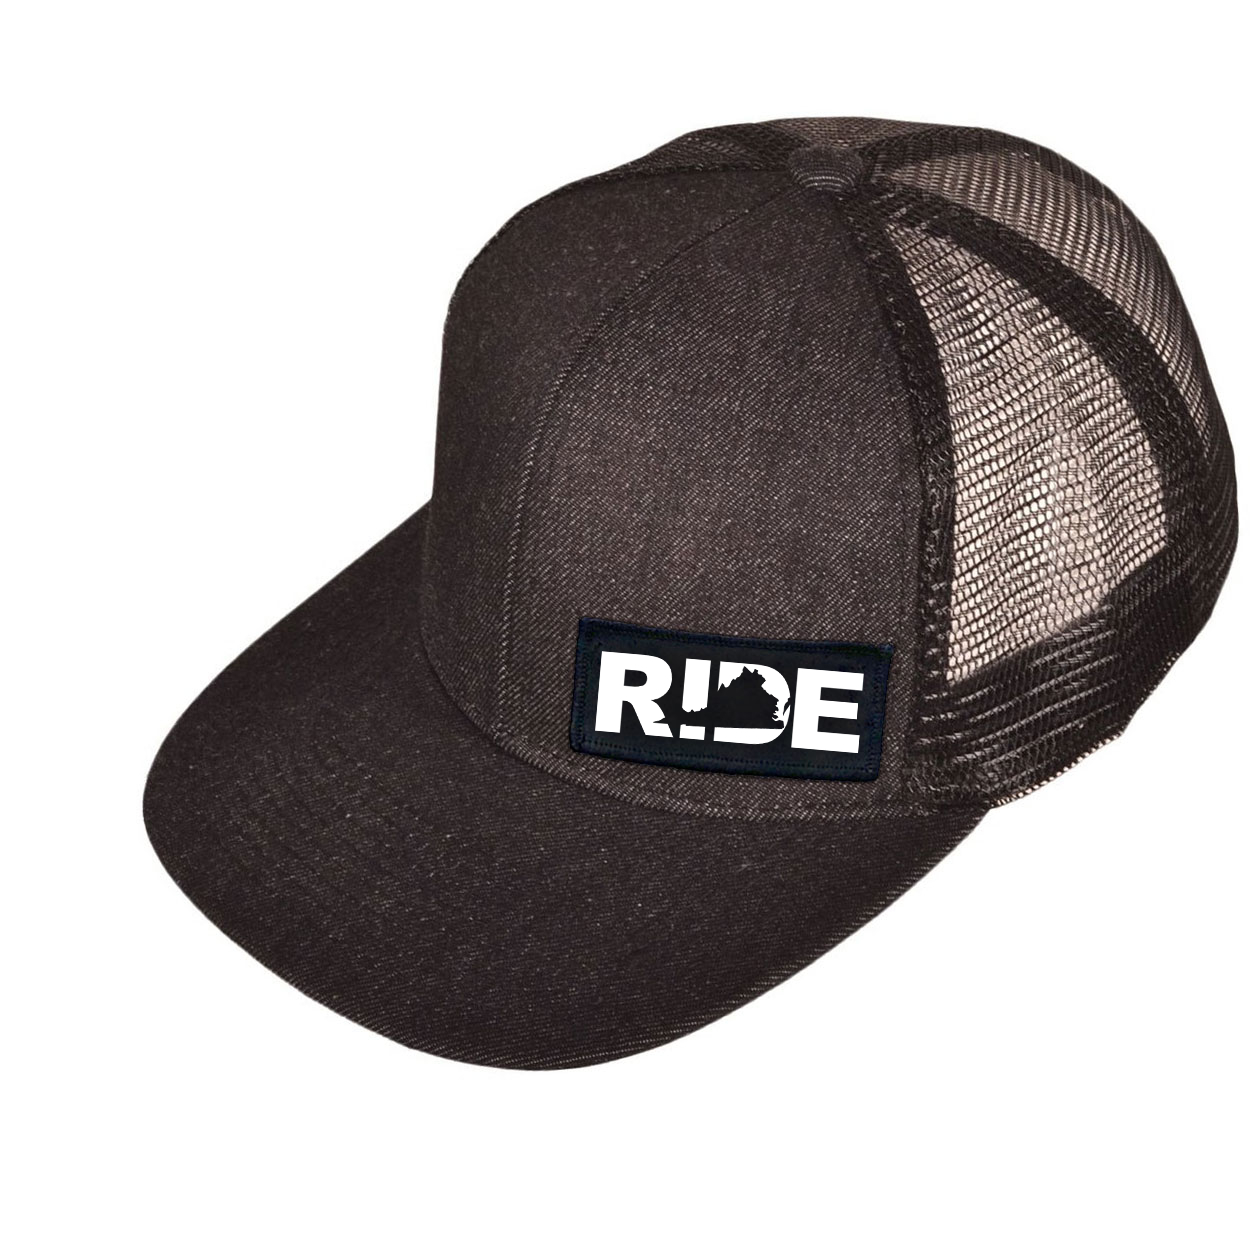 Ride Virginia Night Out Woven Patch Snapback Flat Brim Hat Black Denim (White Logo)